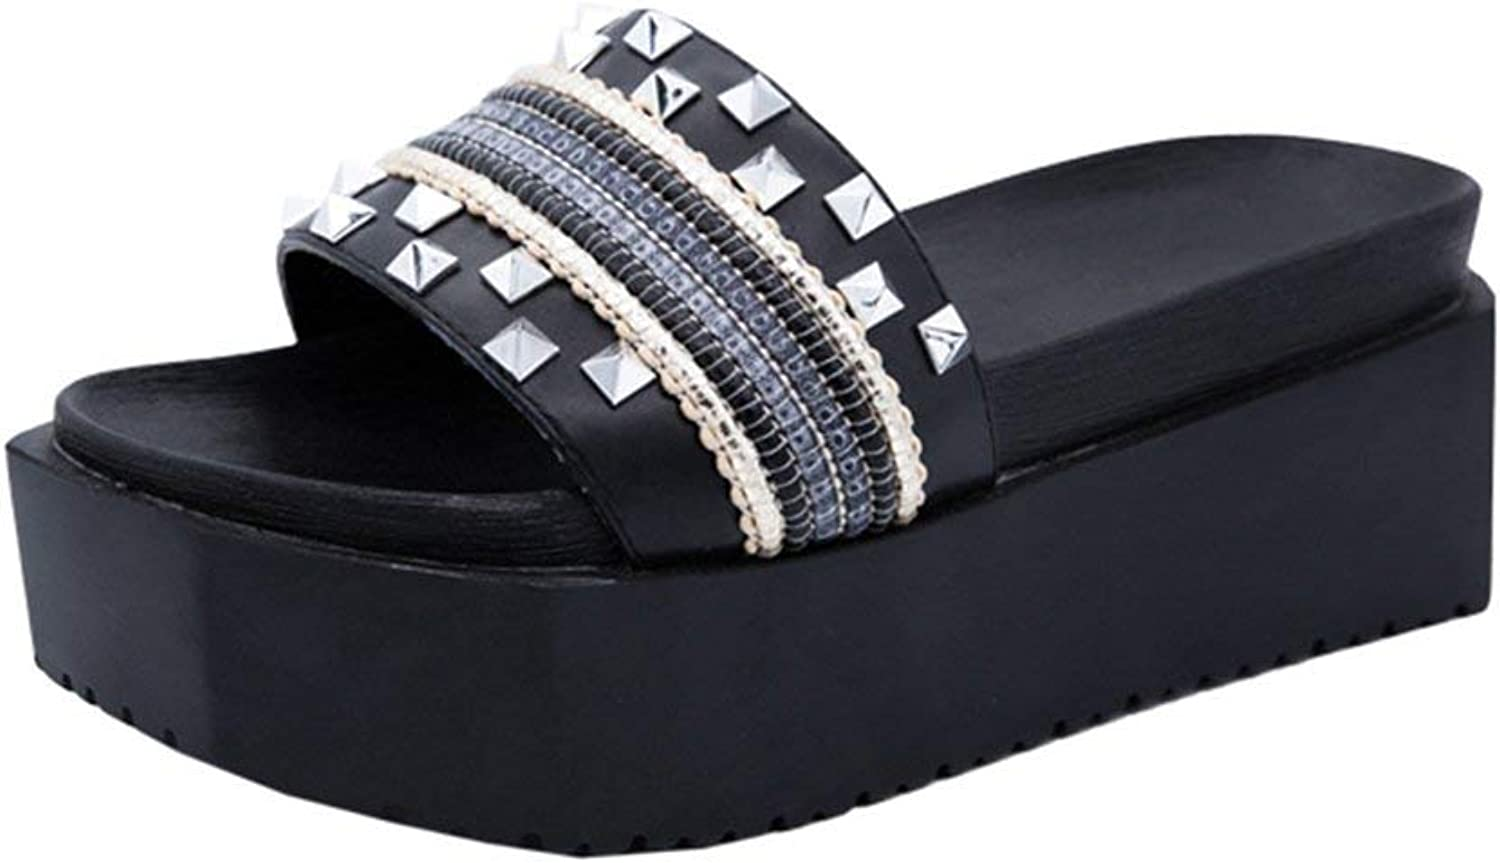 Comfortable and beautiful ladies sandals Sandals Female Fashion Pink Outdoor Movement Slippers